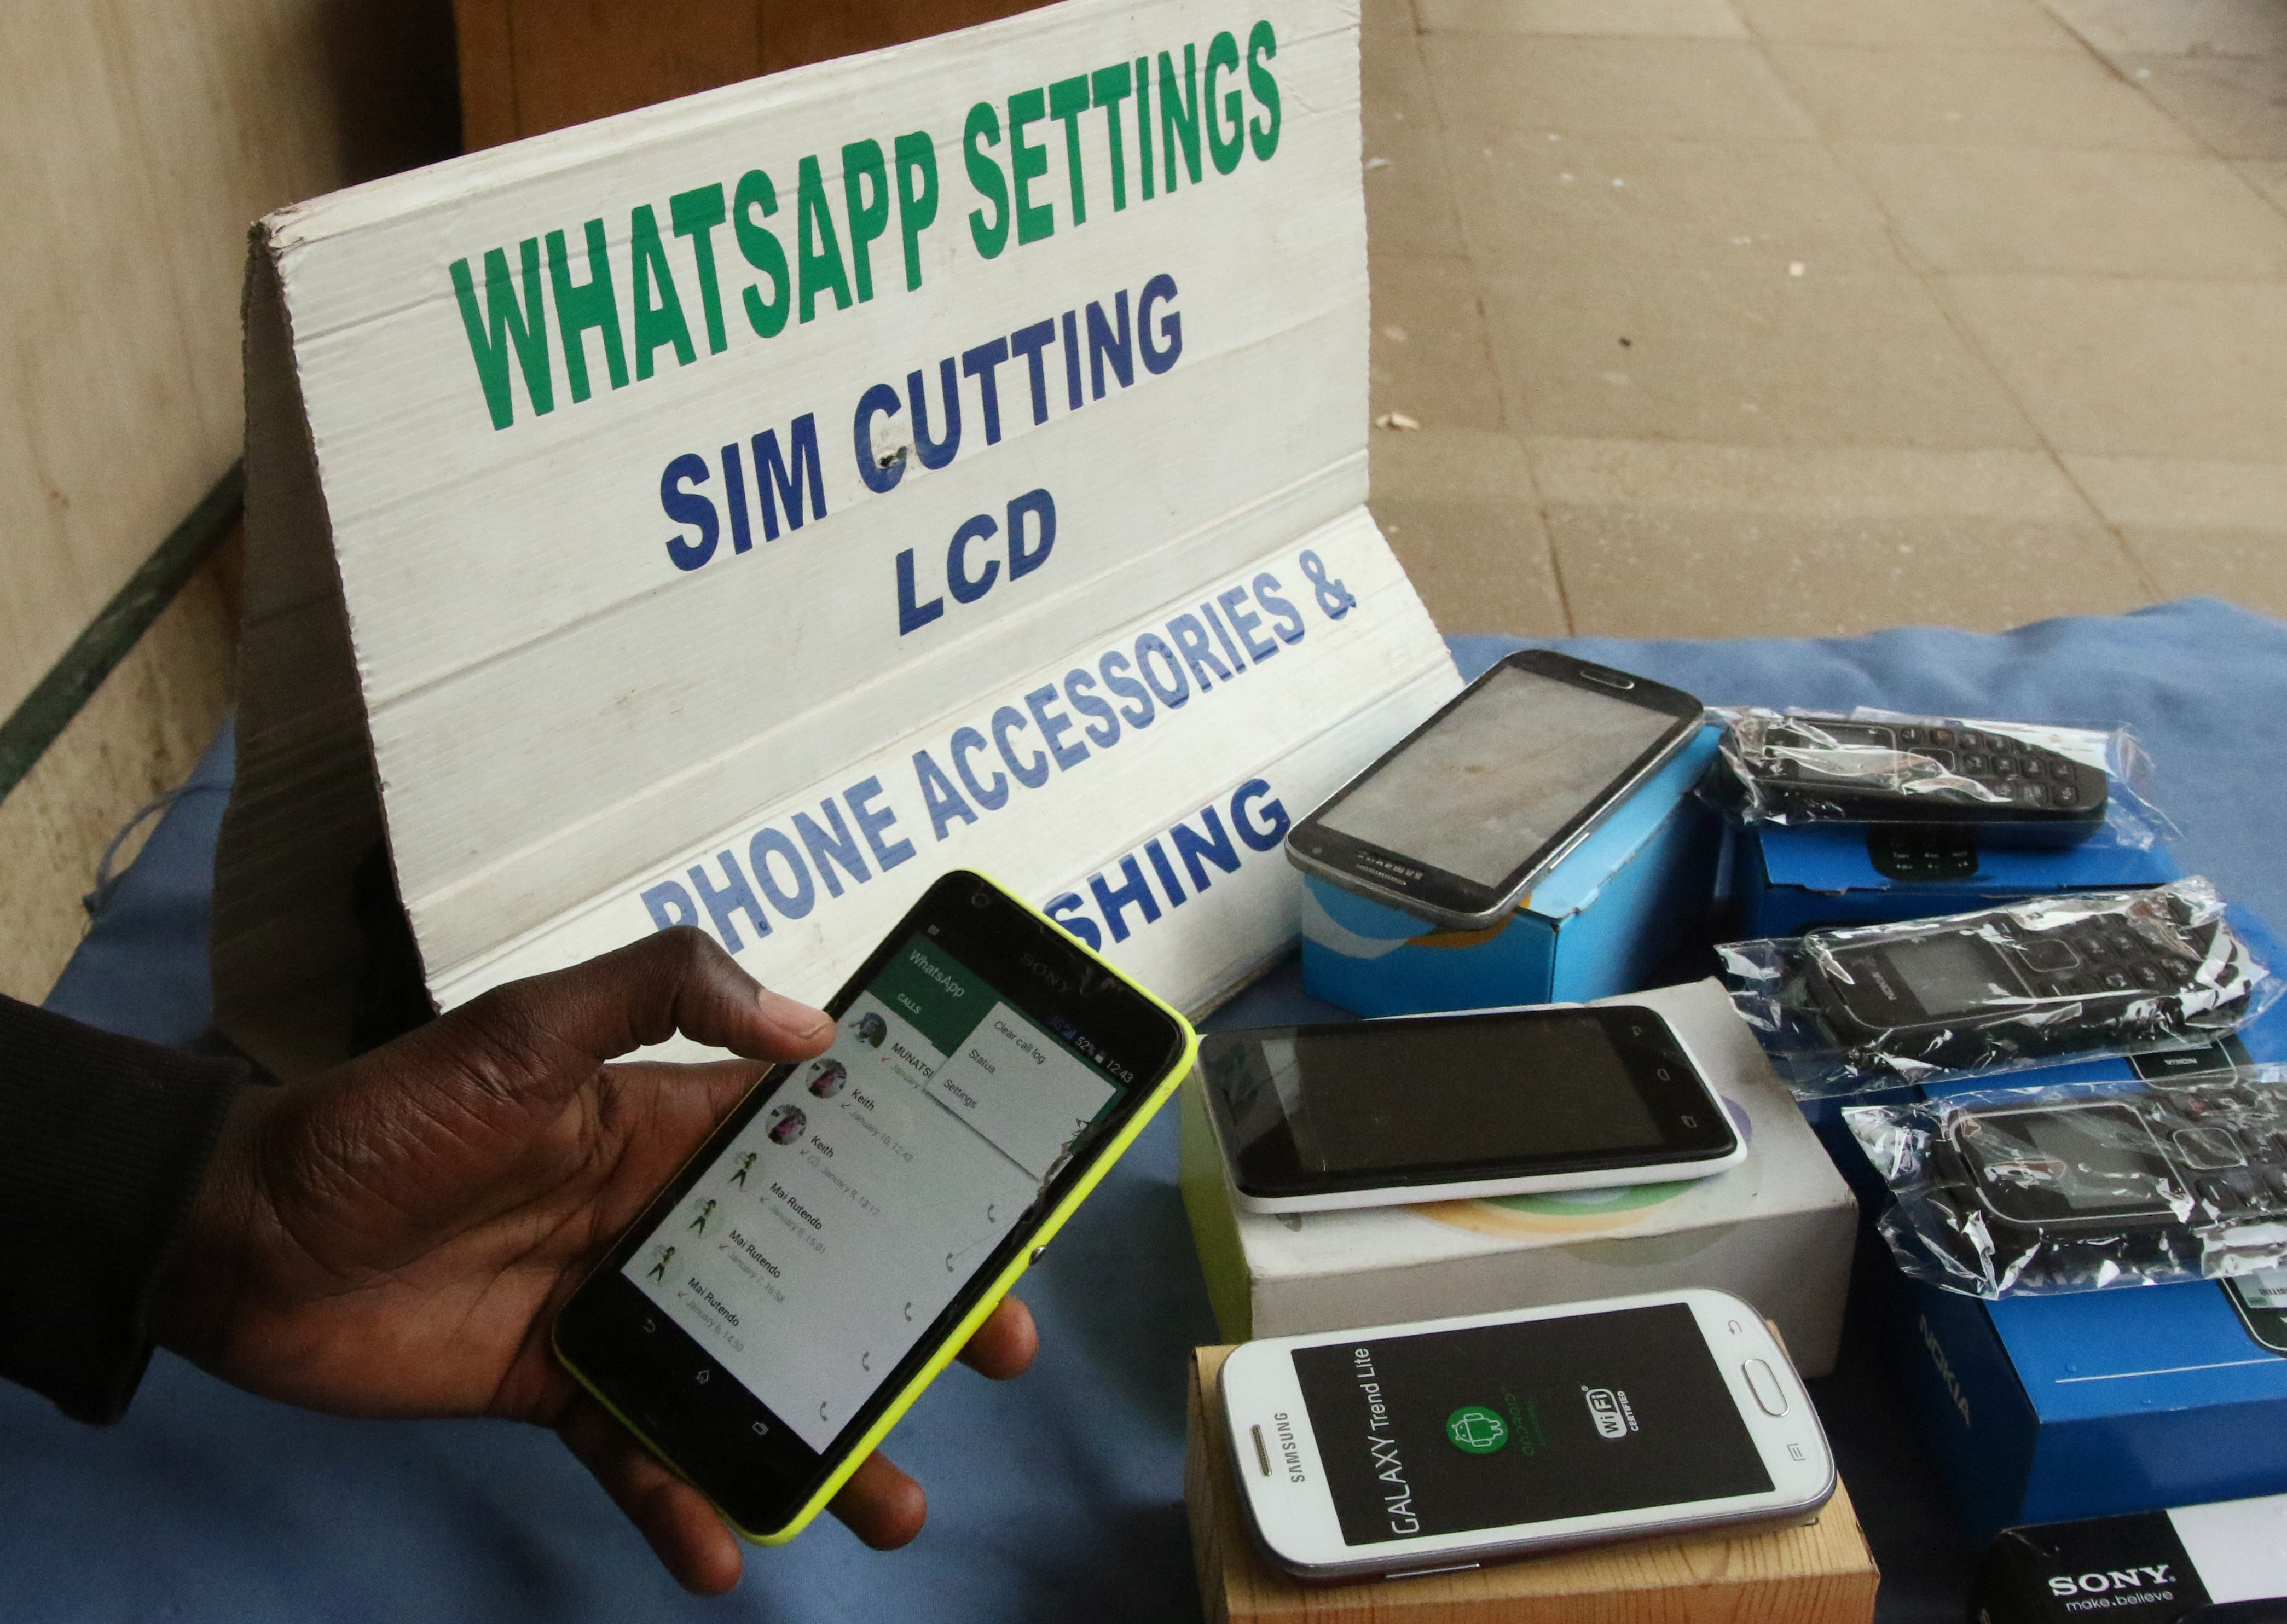 A street vendor adjusts the internet settings on a customer's mobile phone in Harare, Zimbabwe, January 13, 2017. REUTERS/Philimon Bulawayo